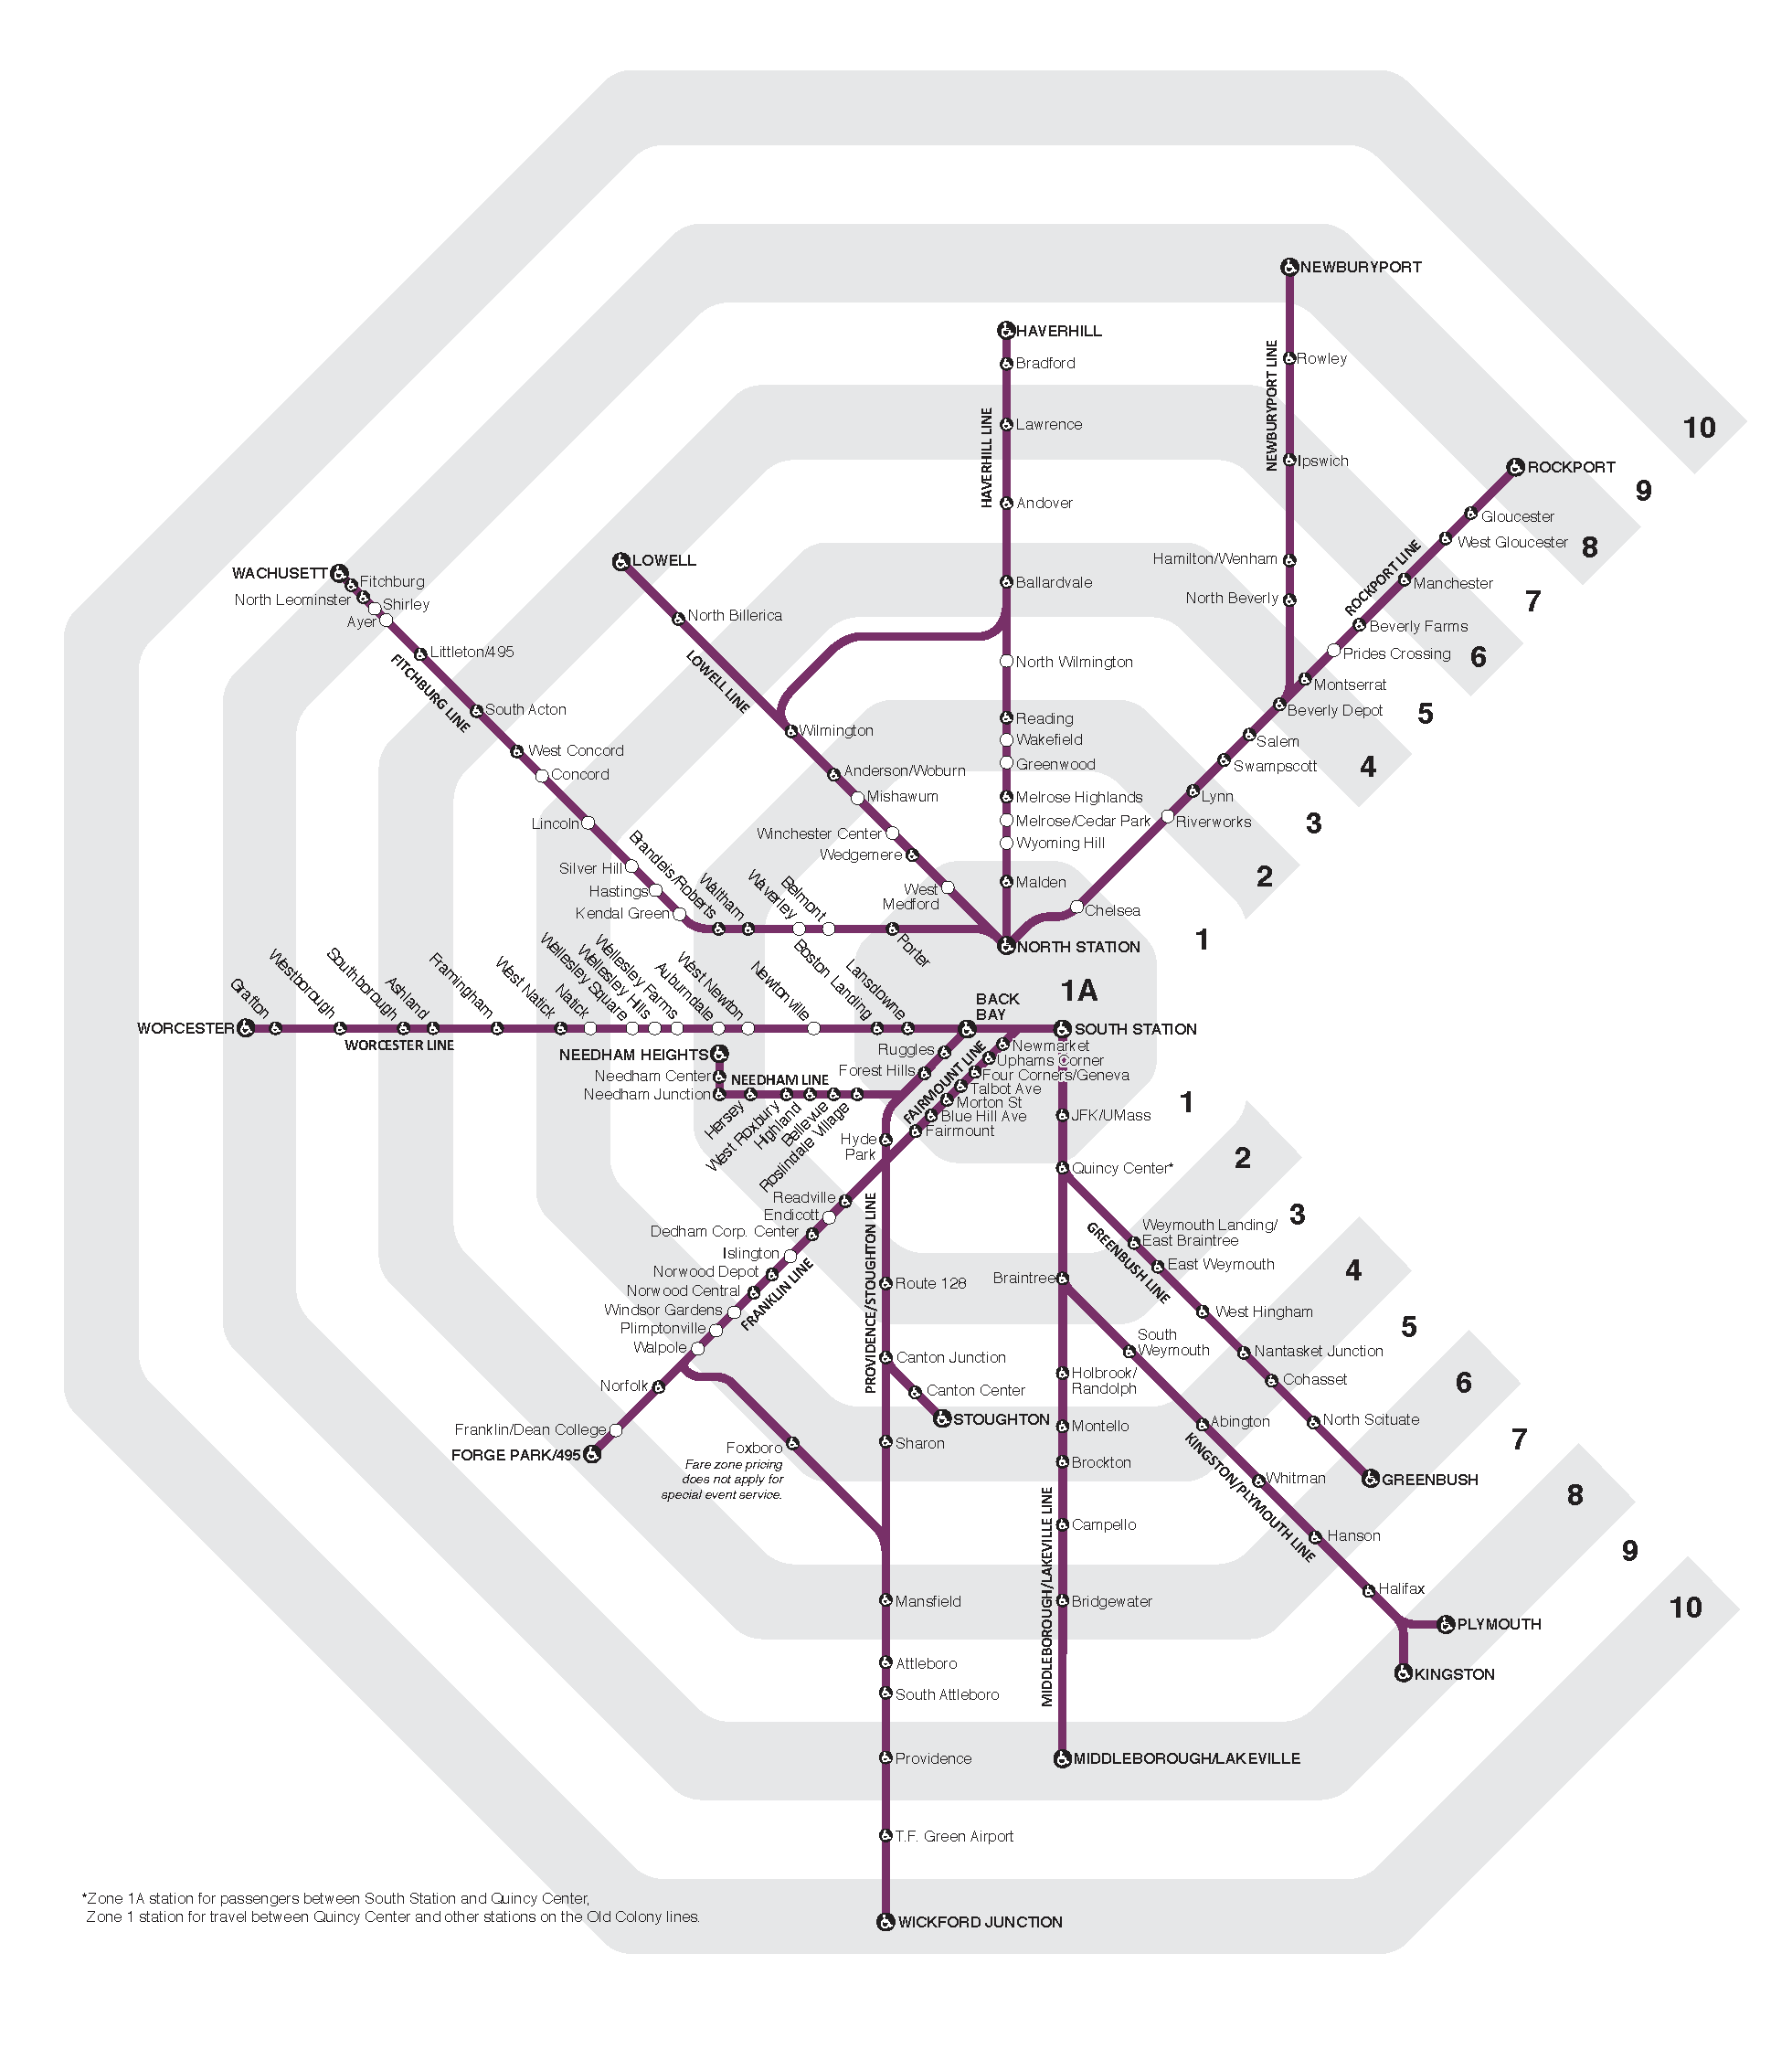 Map of all Commtuer Rail lines, with shading to indicate which fare zone each station is in